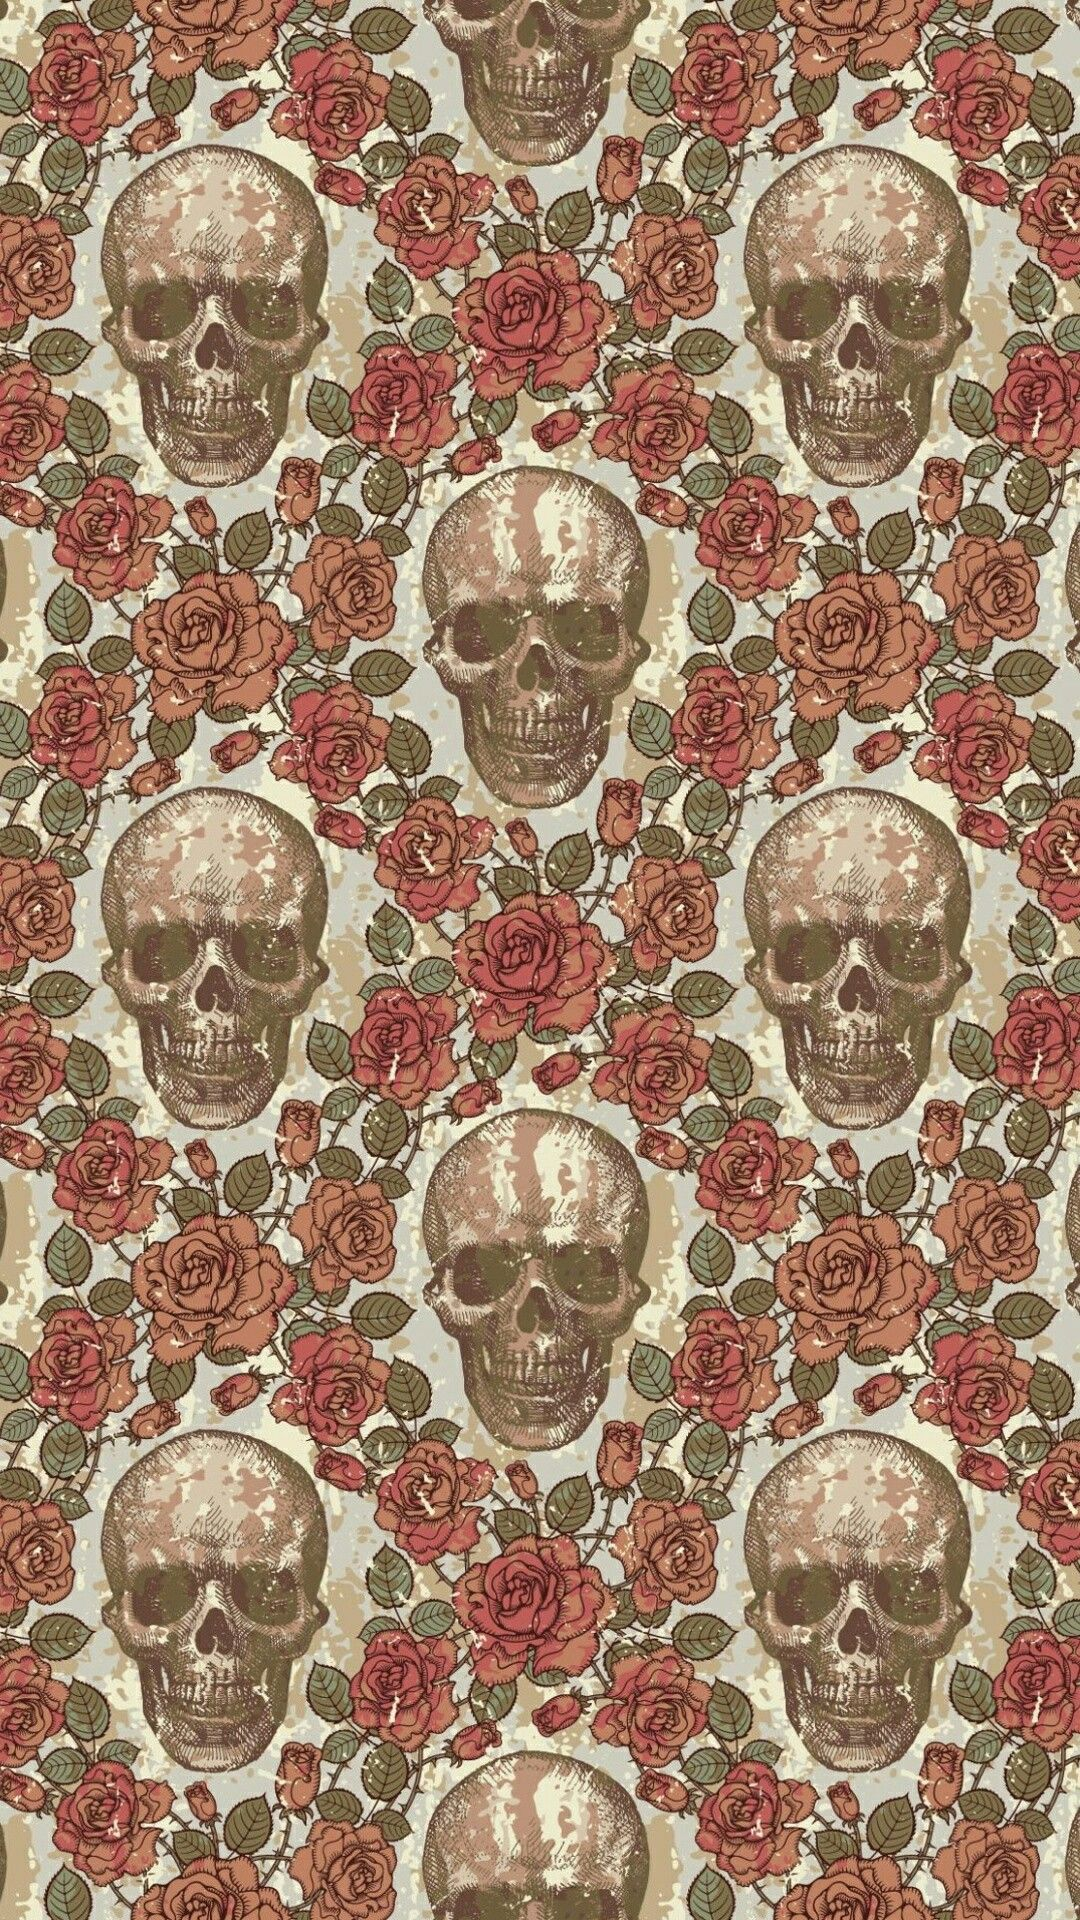 Pin by Ammie Asklund on My apple decor in 2019 Skull wallpaper 1080x1920